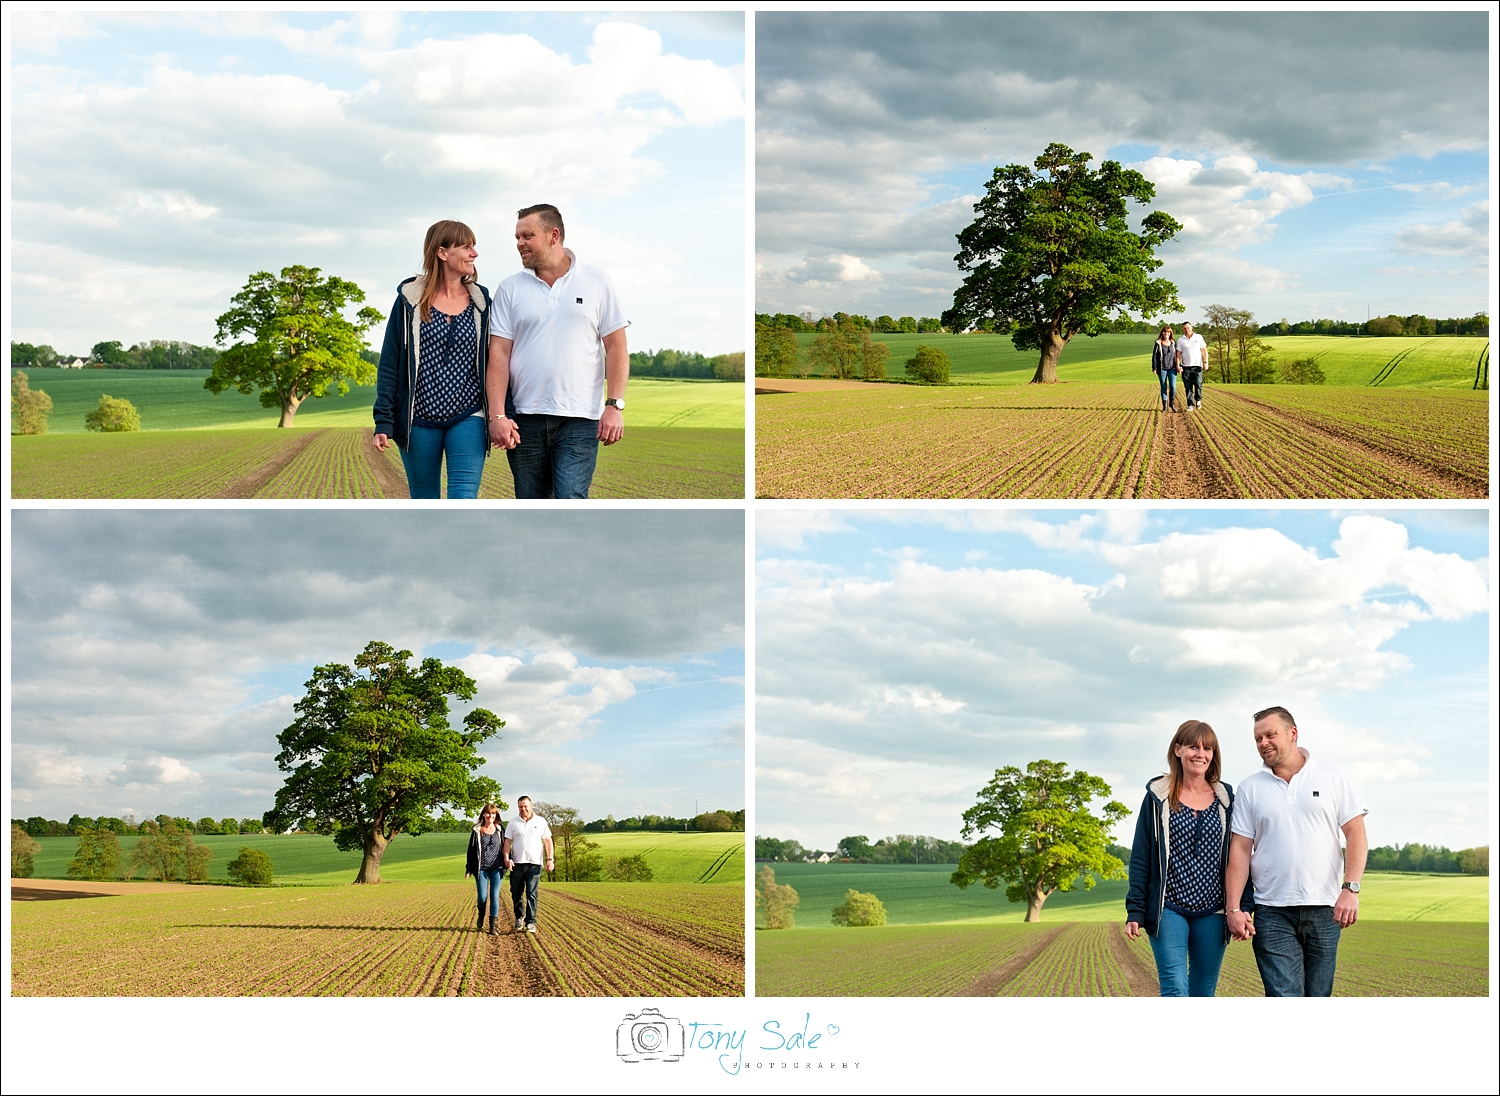 Pre wedding photo shoot in the countryside of Gosfield